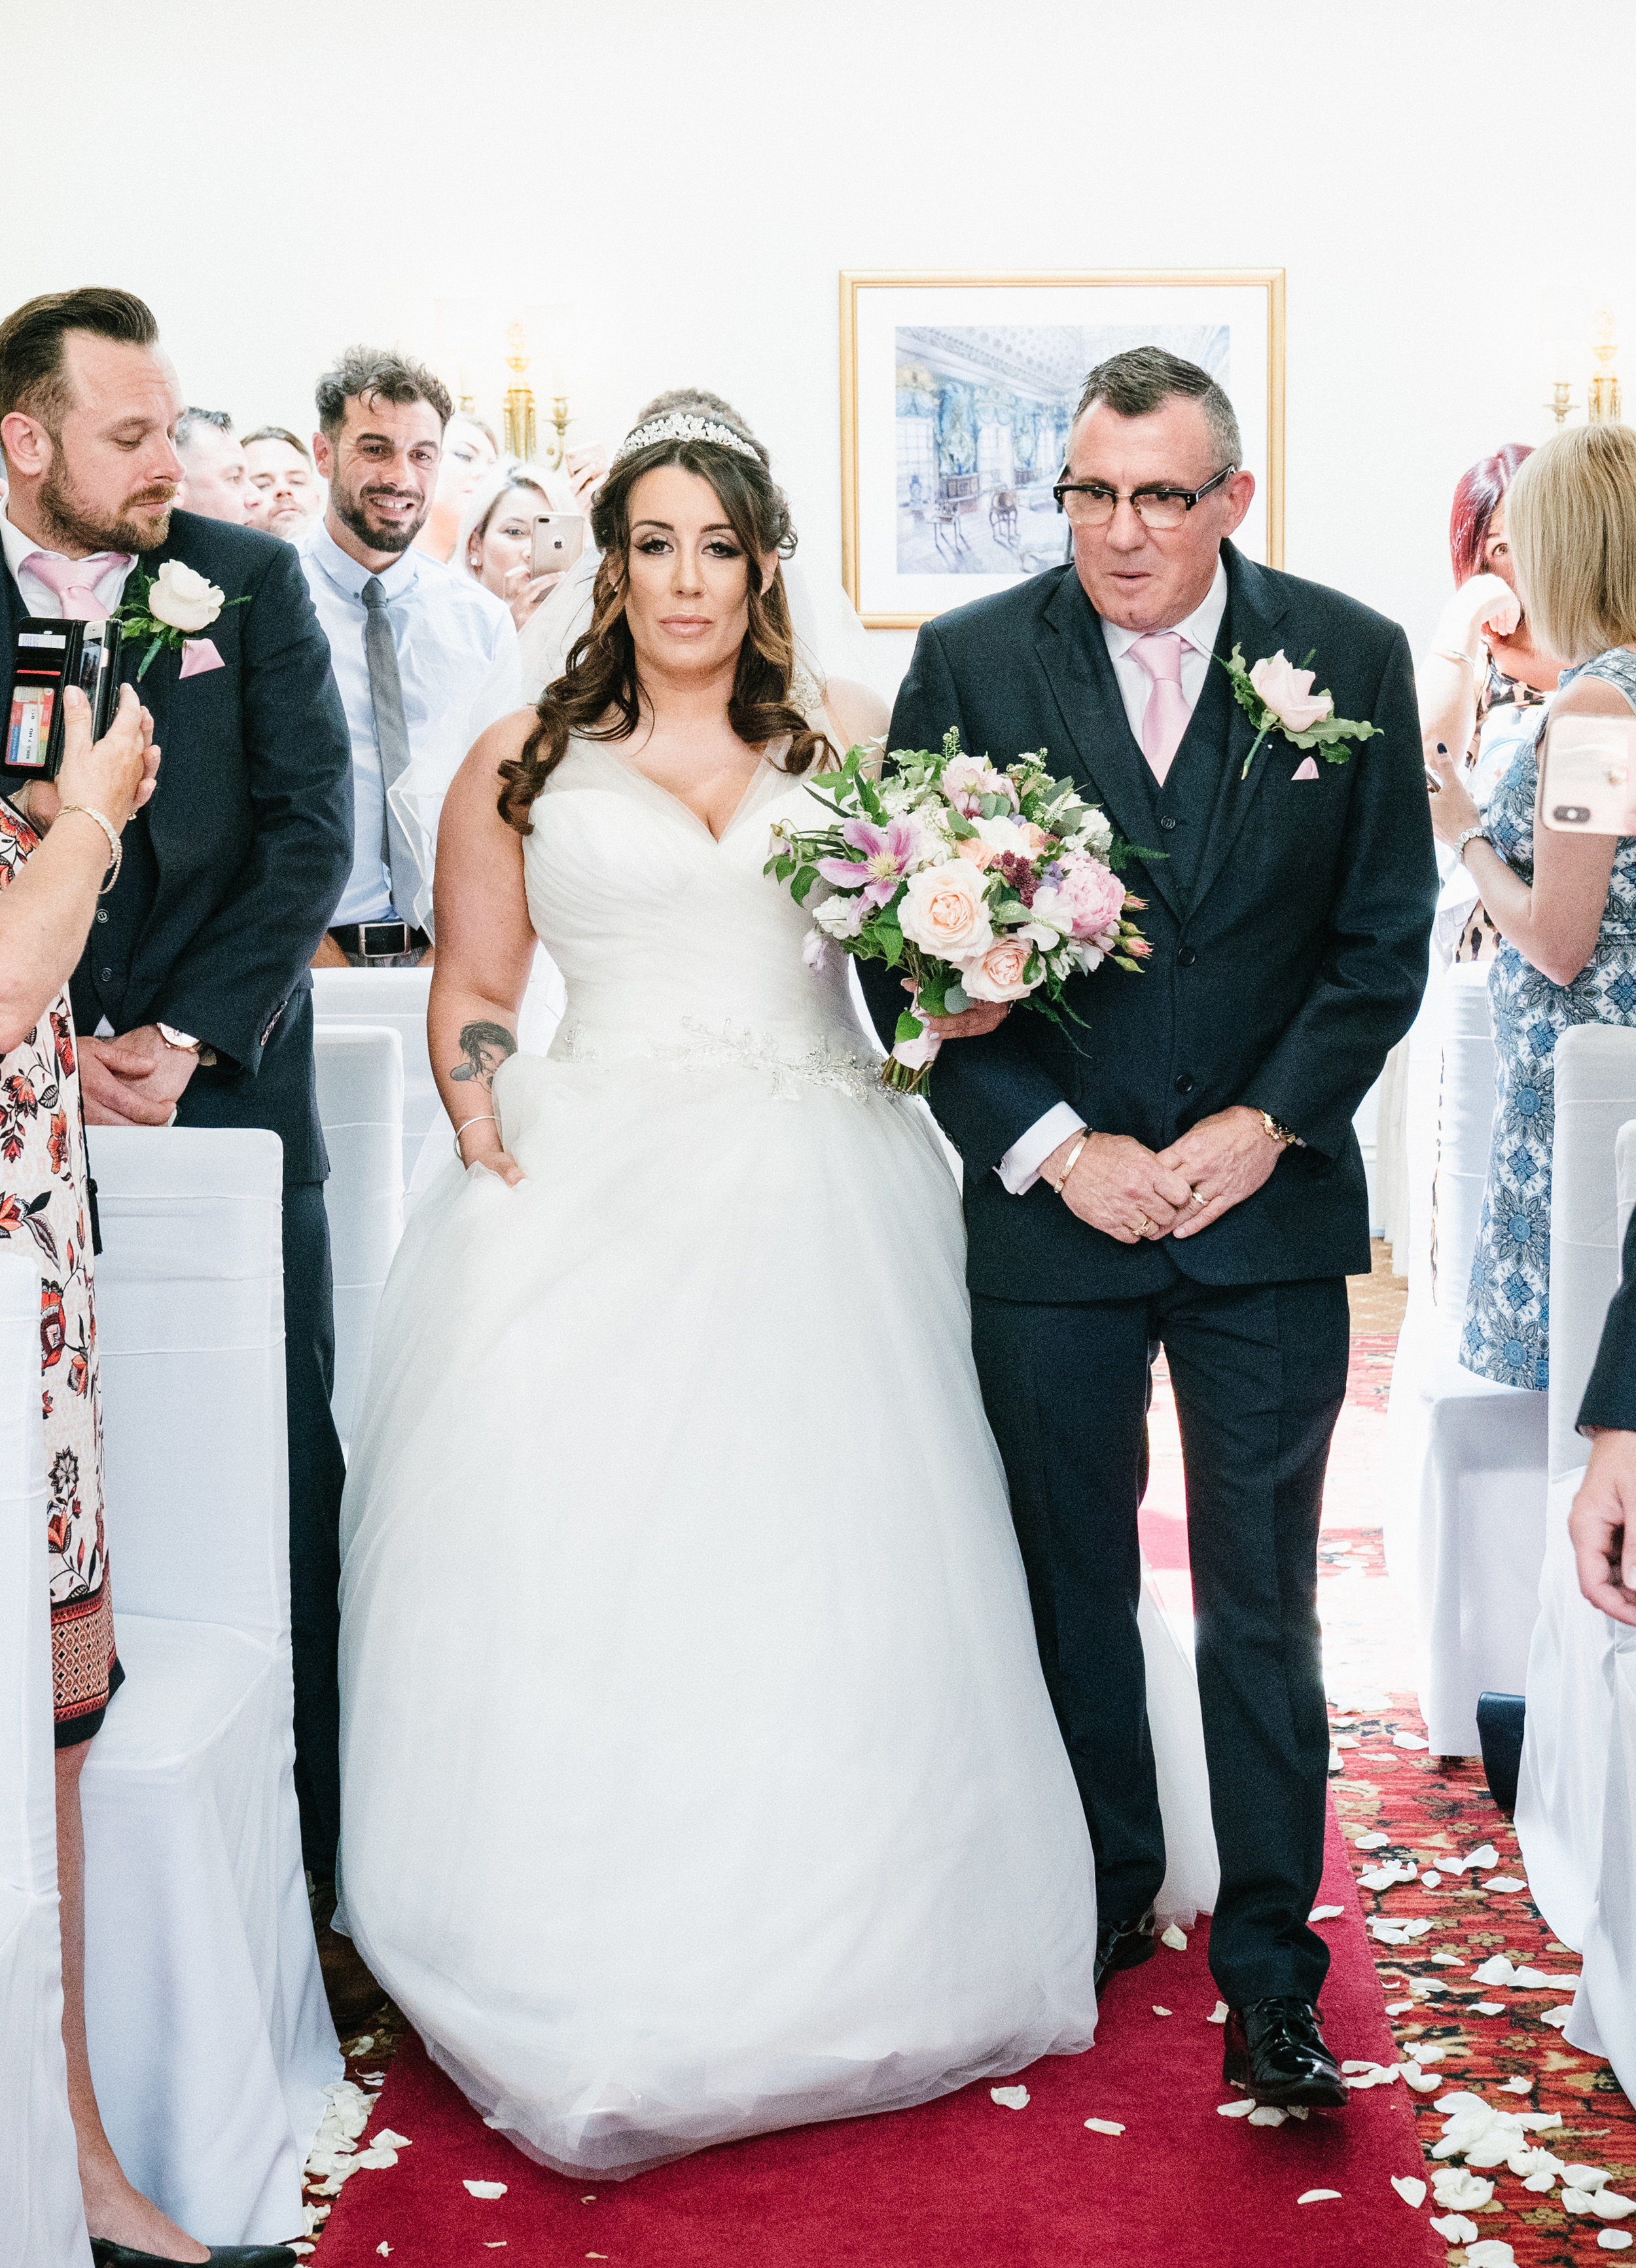 woburn-bedfordshire-london-wedding-photography-videography-22